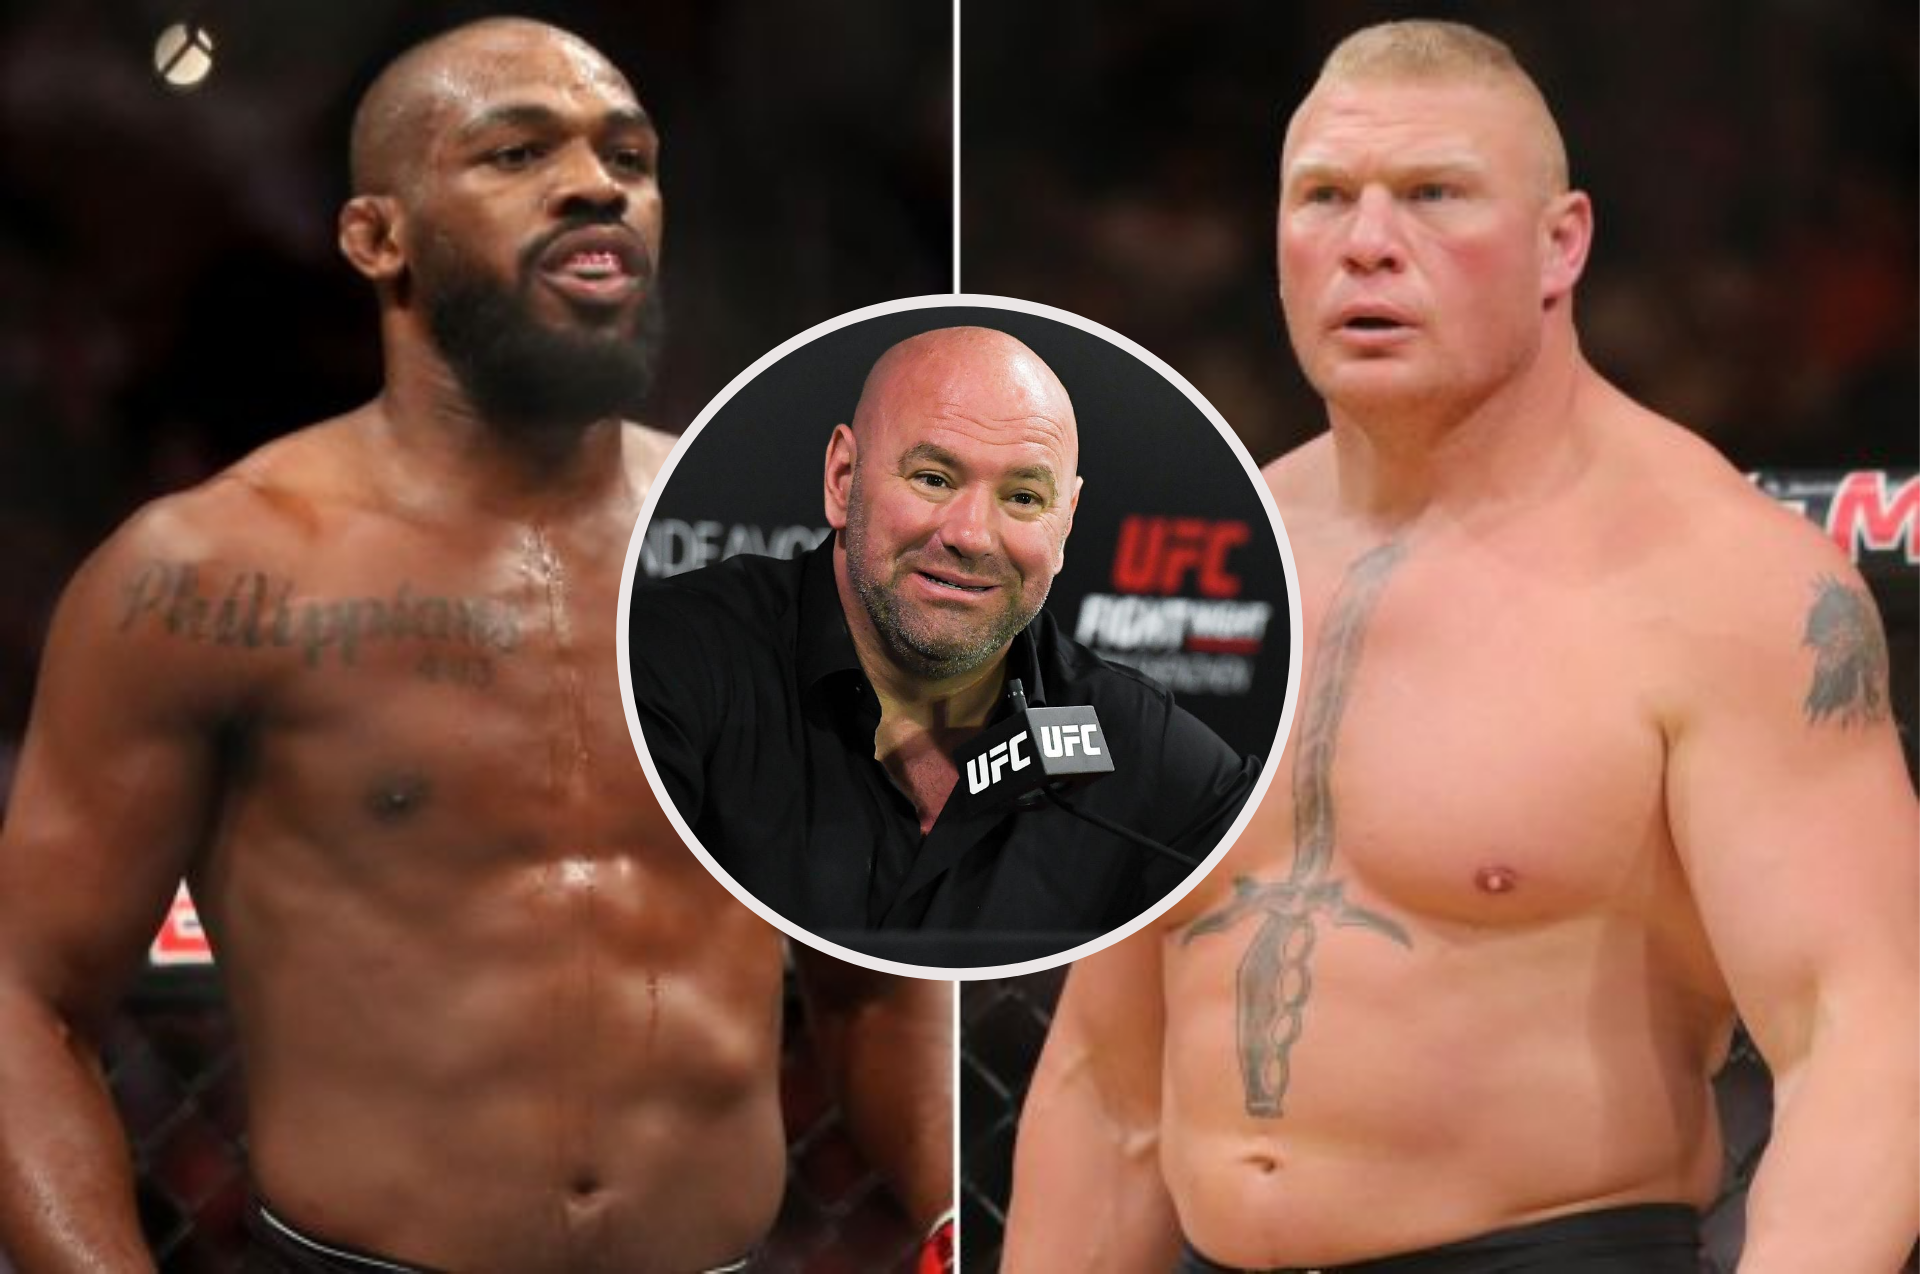 Dana White willing to book Jones vs Lesnar if both parties are interested - Jones